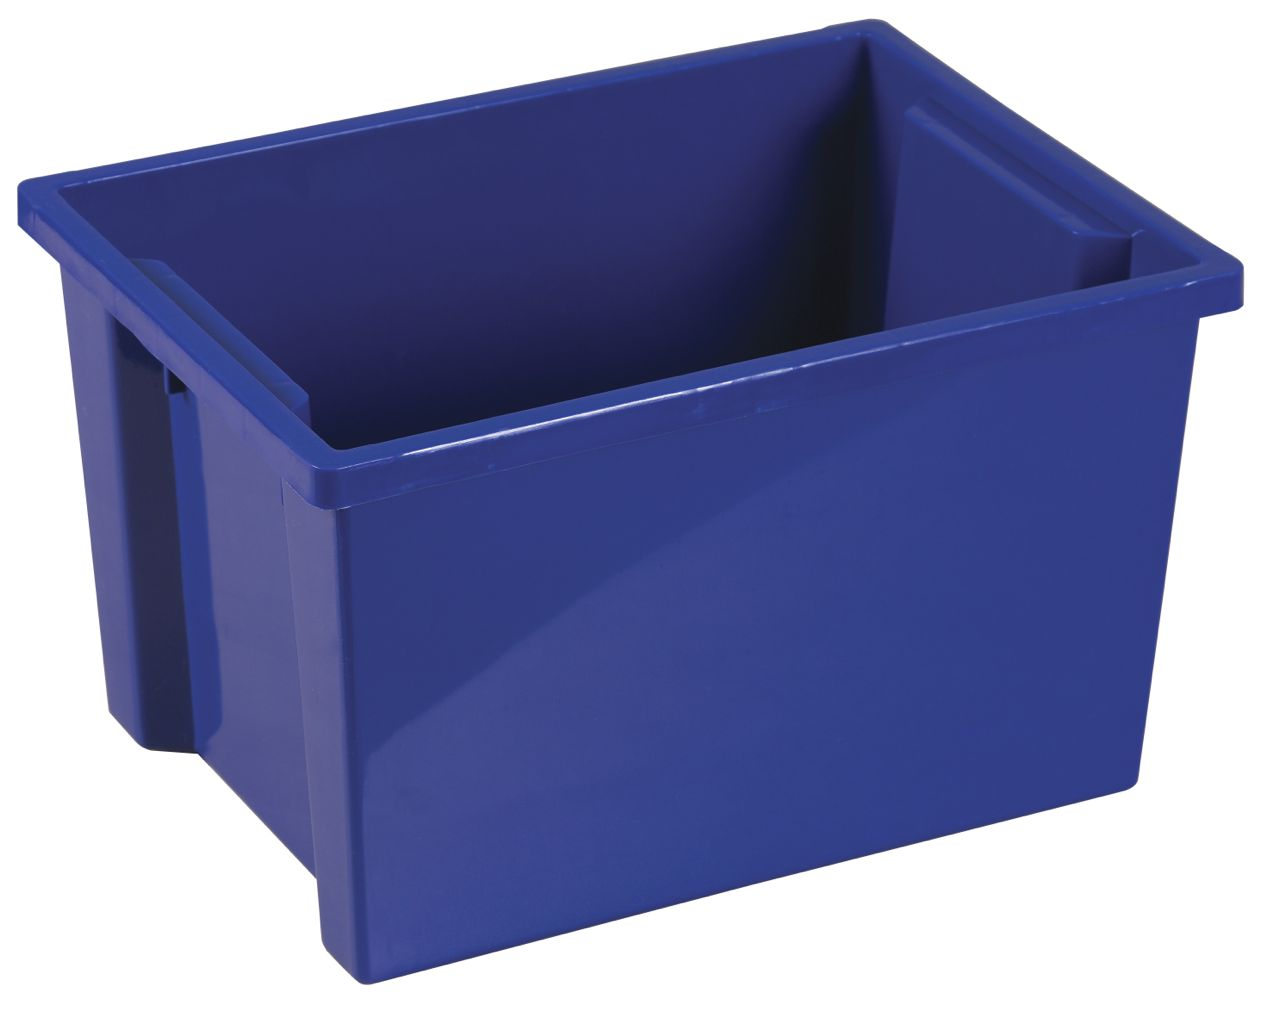 Ecr4kids Large Storage Bins 6 Pack Aaa State Of Play